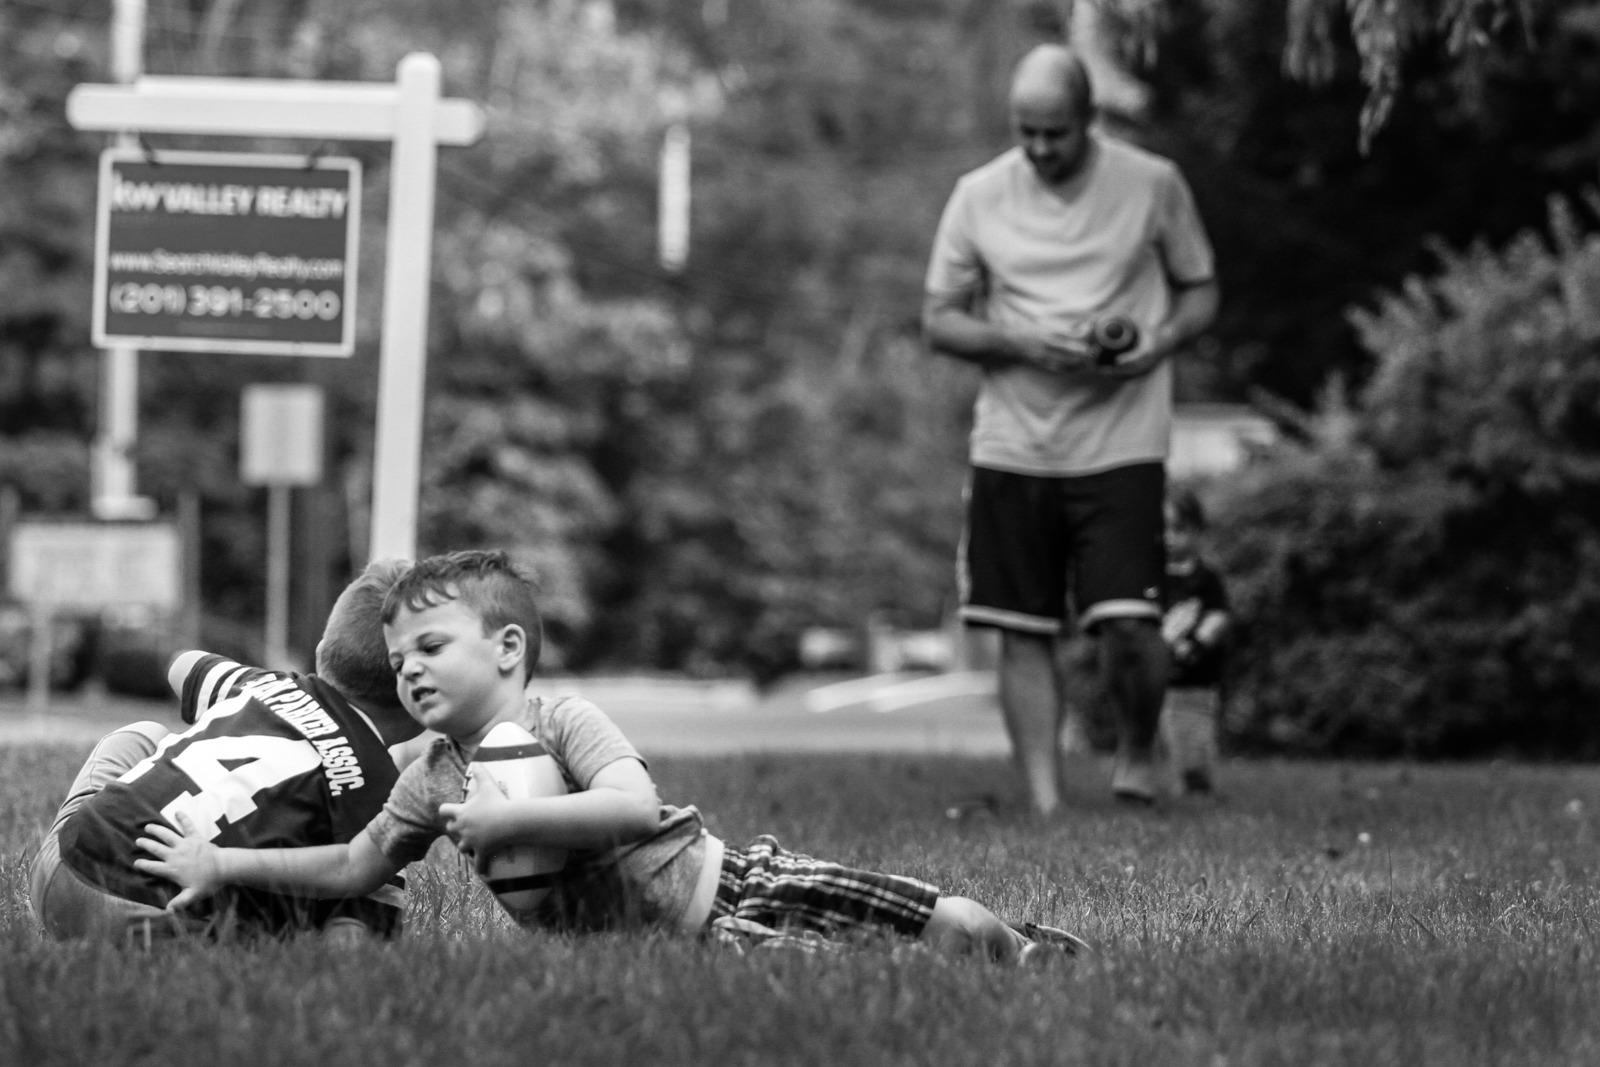 Two boys wrestle on the grass with football